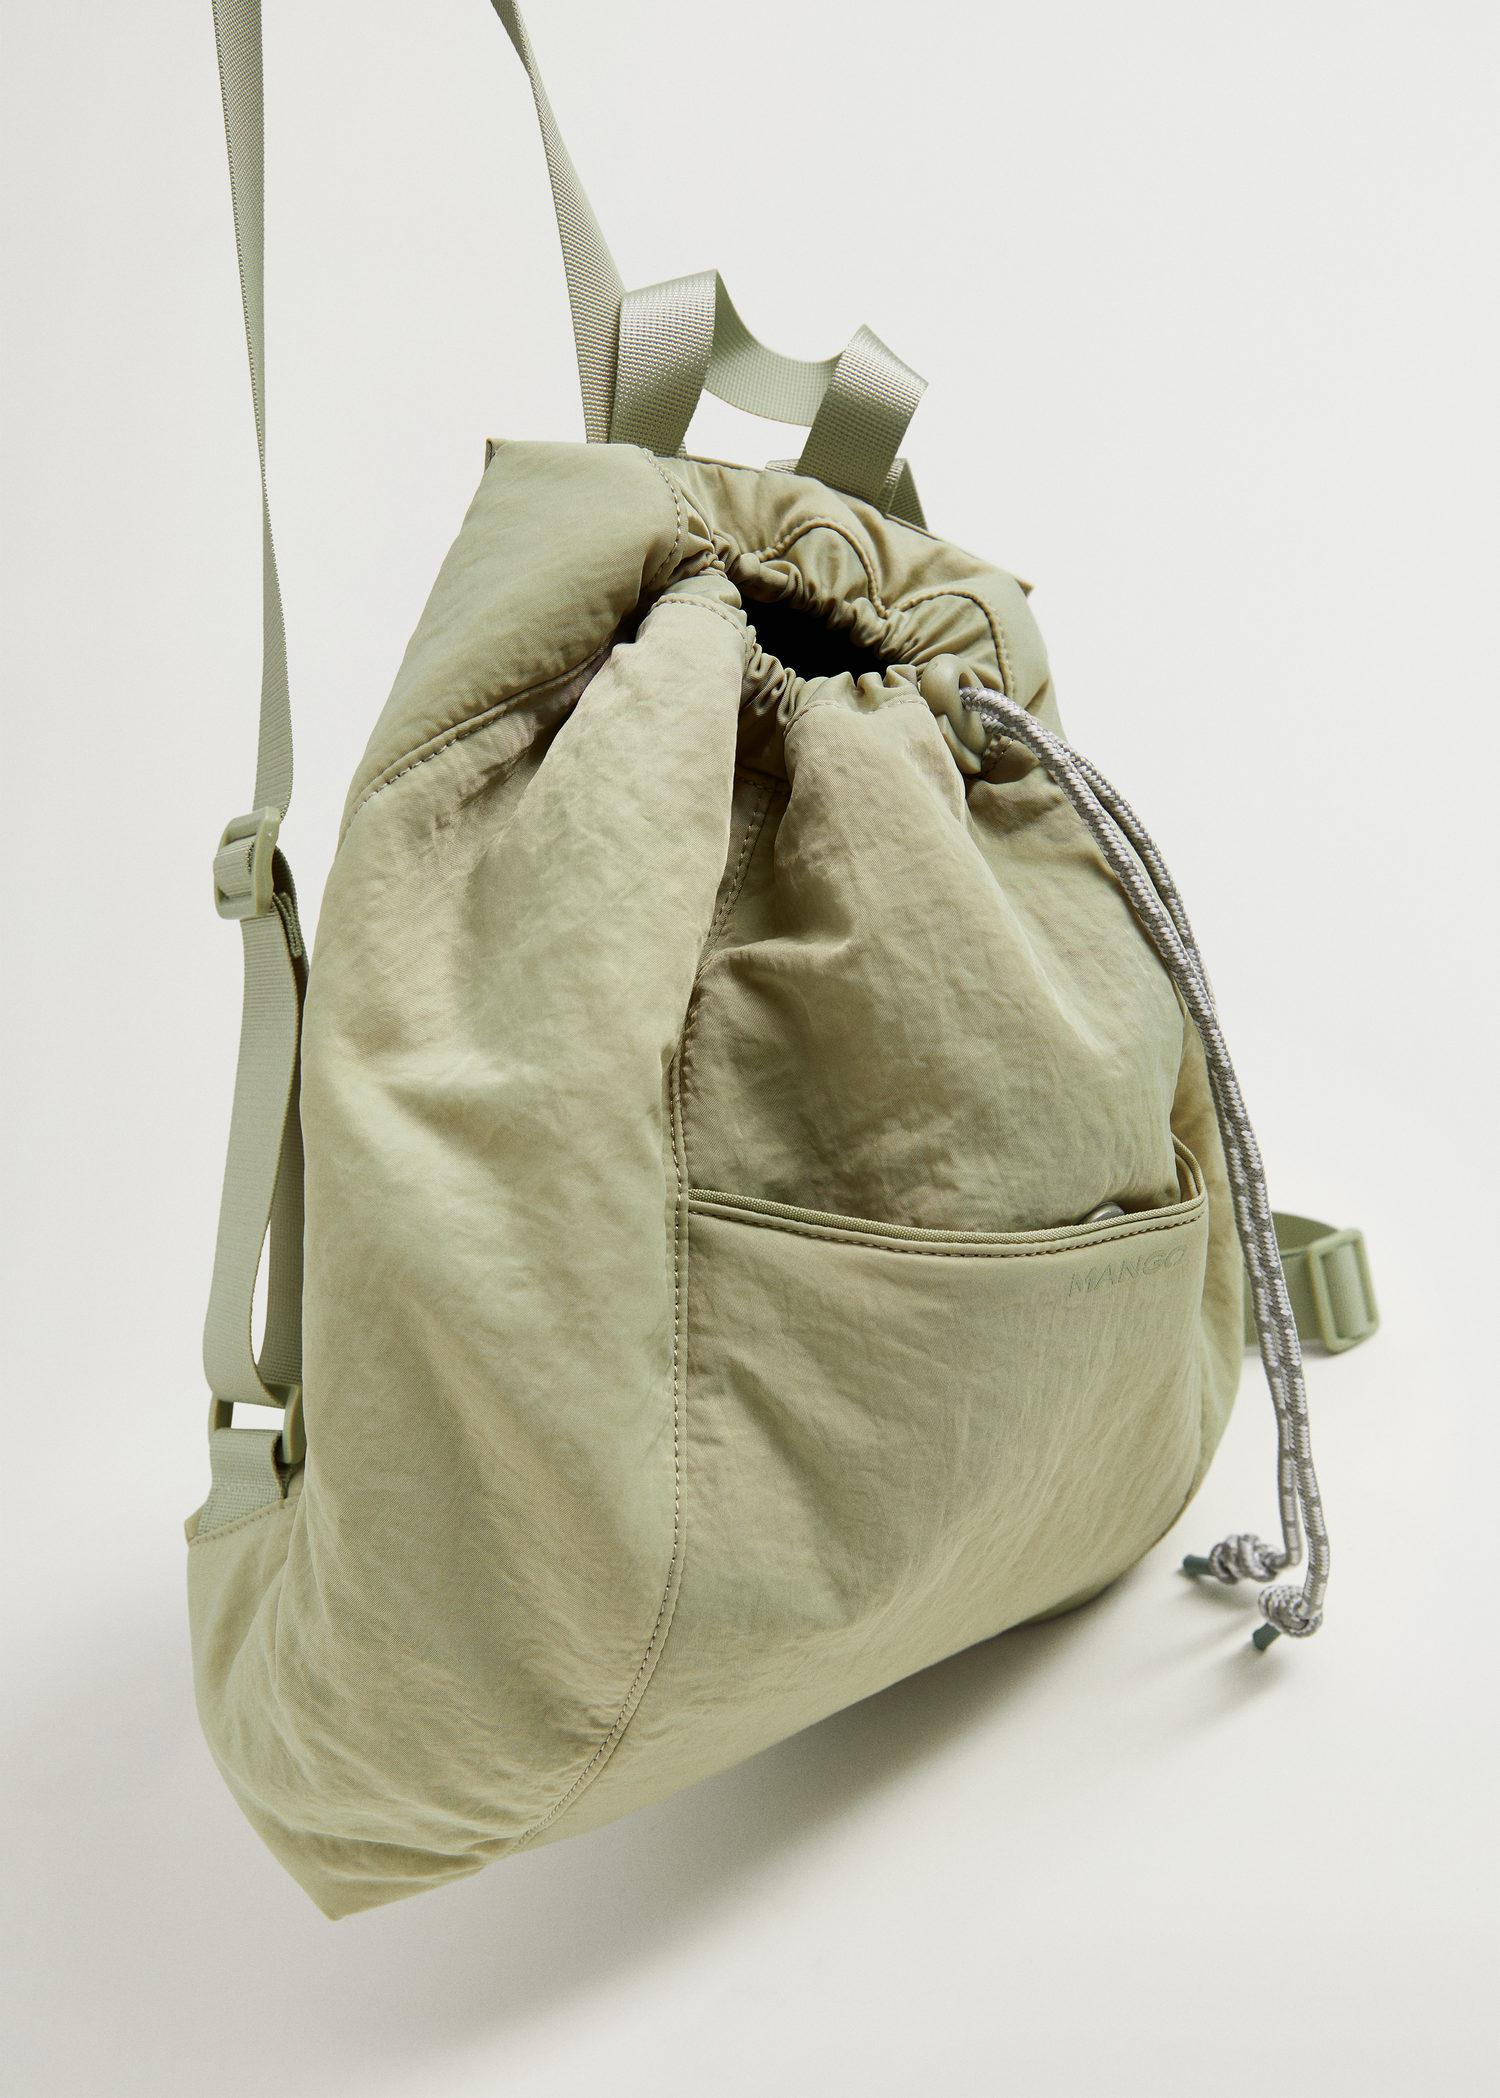 Lace-up sack backpack